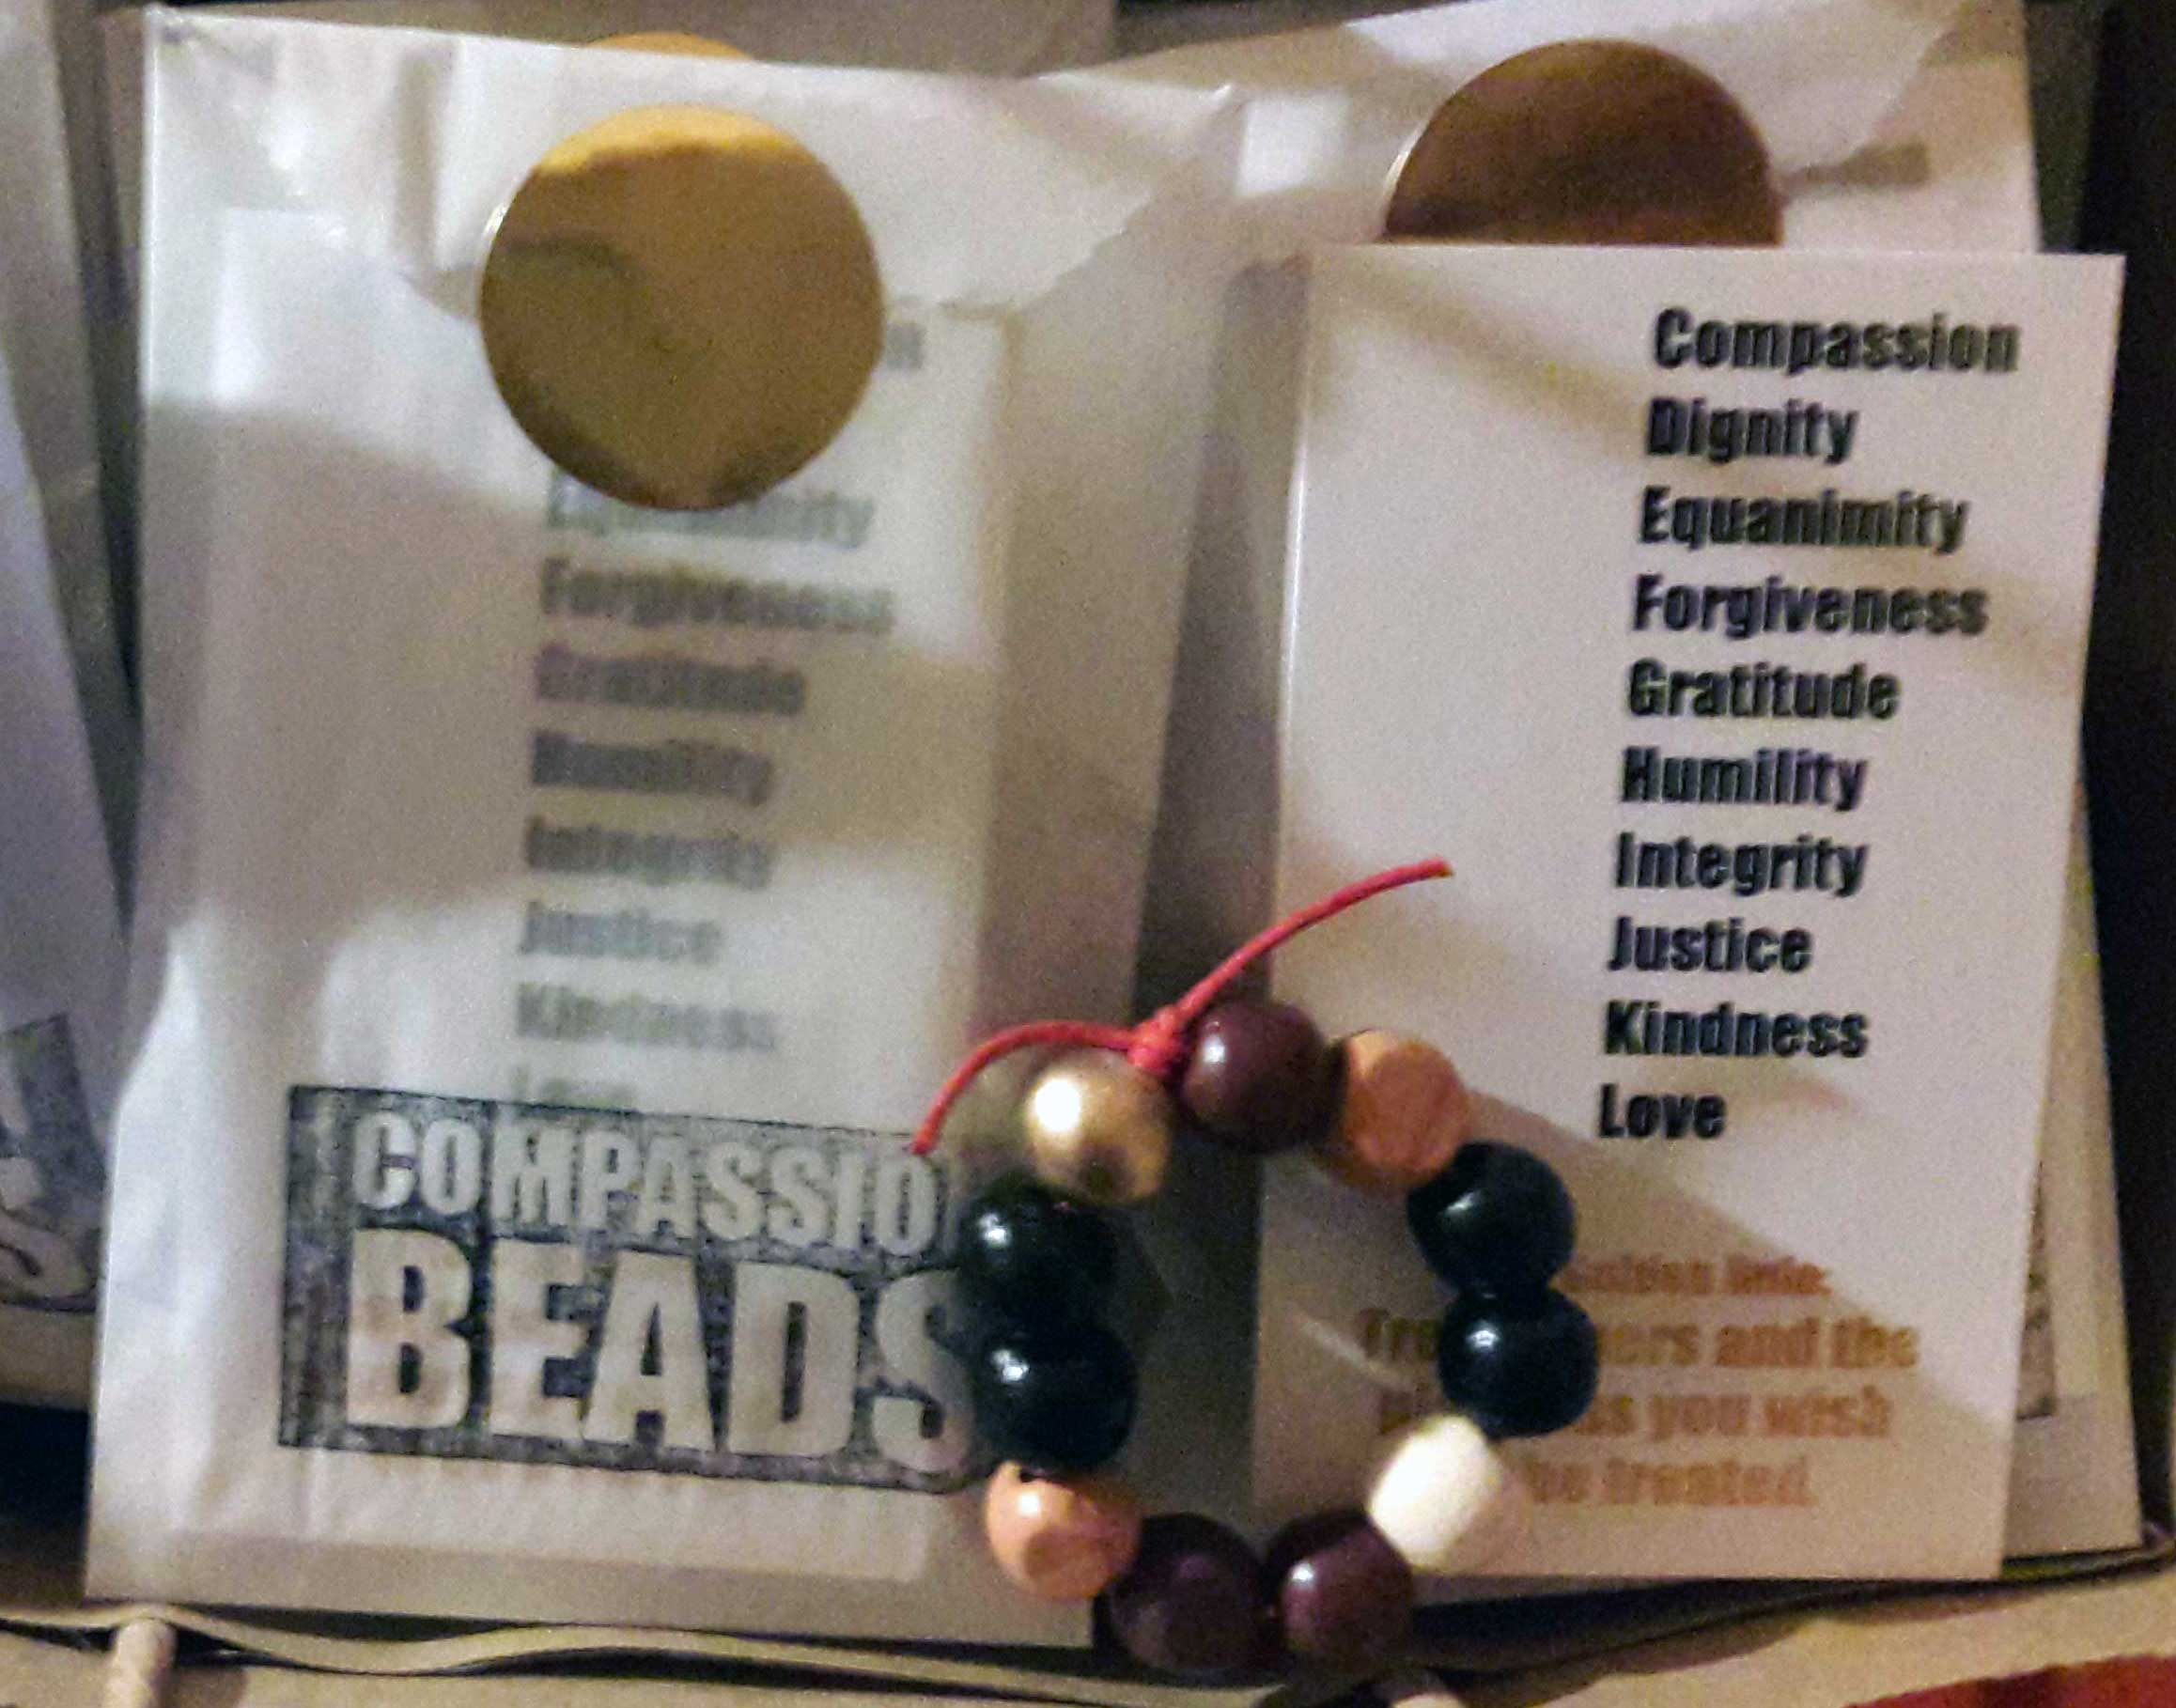 Compassion Beads